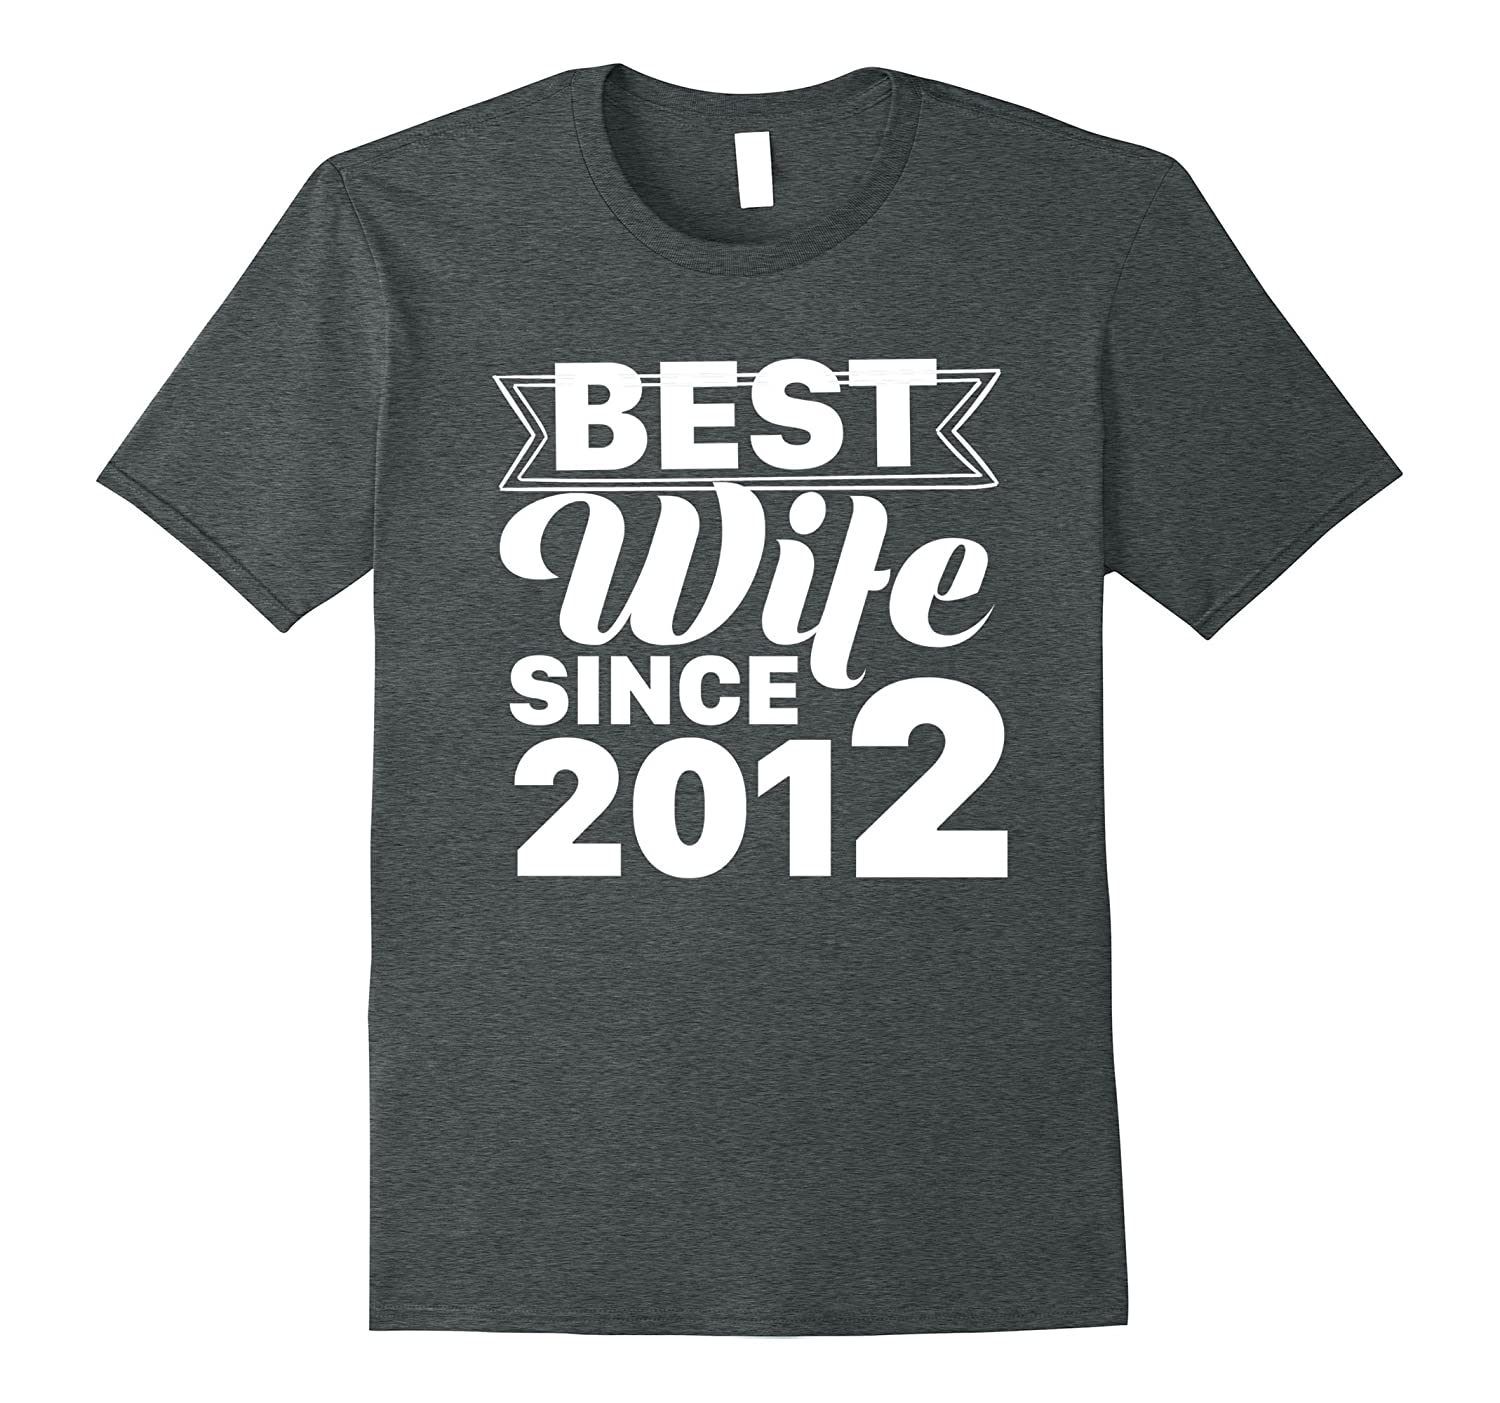 5th Wedding Anniversary Gift Ideas For Her-Wife Since 2012